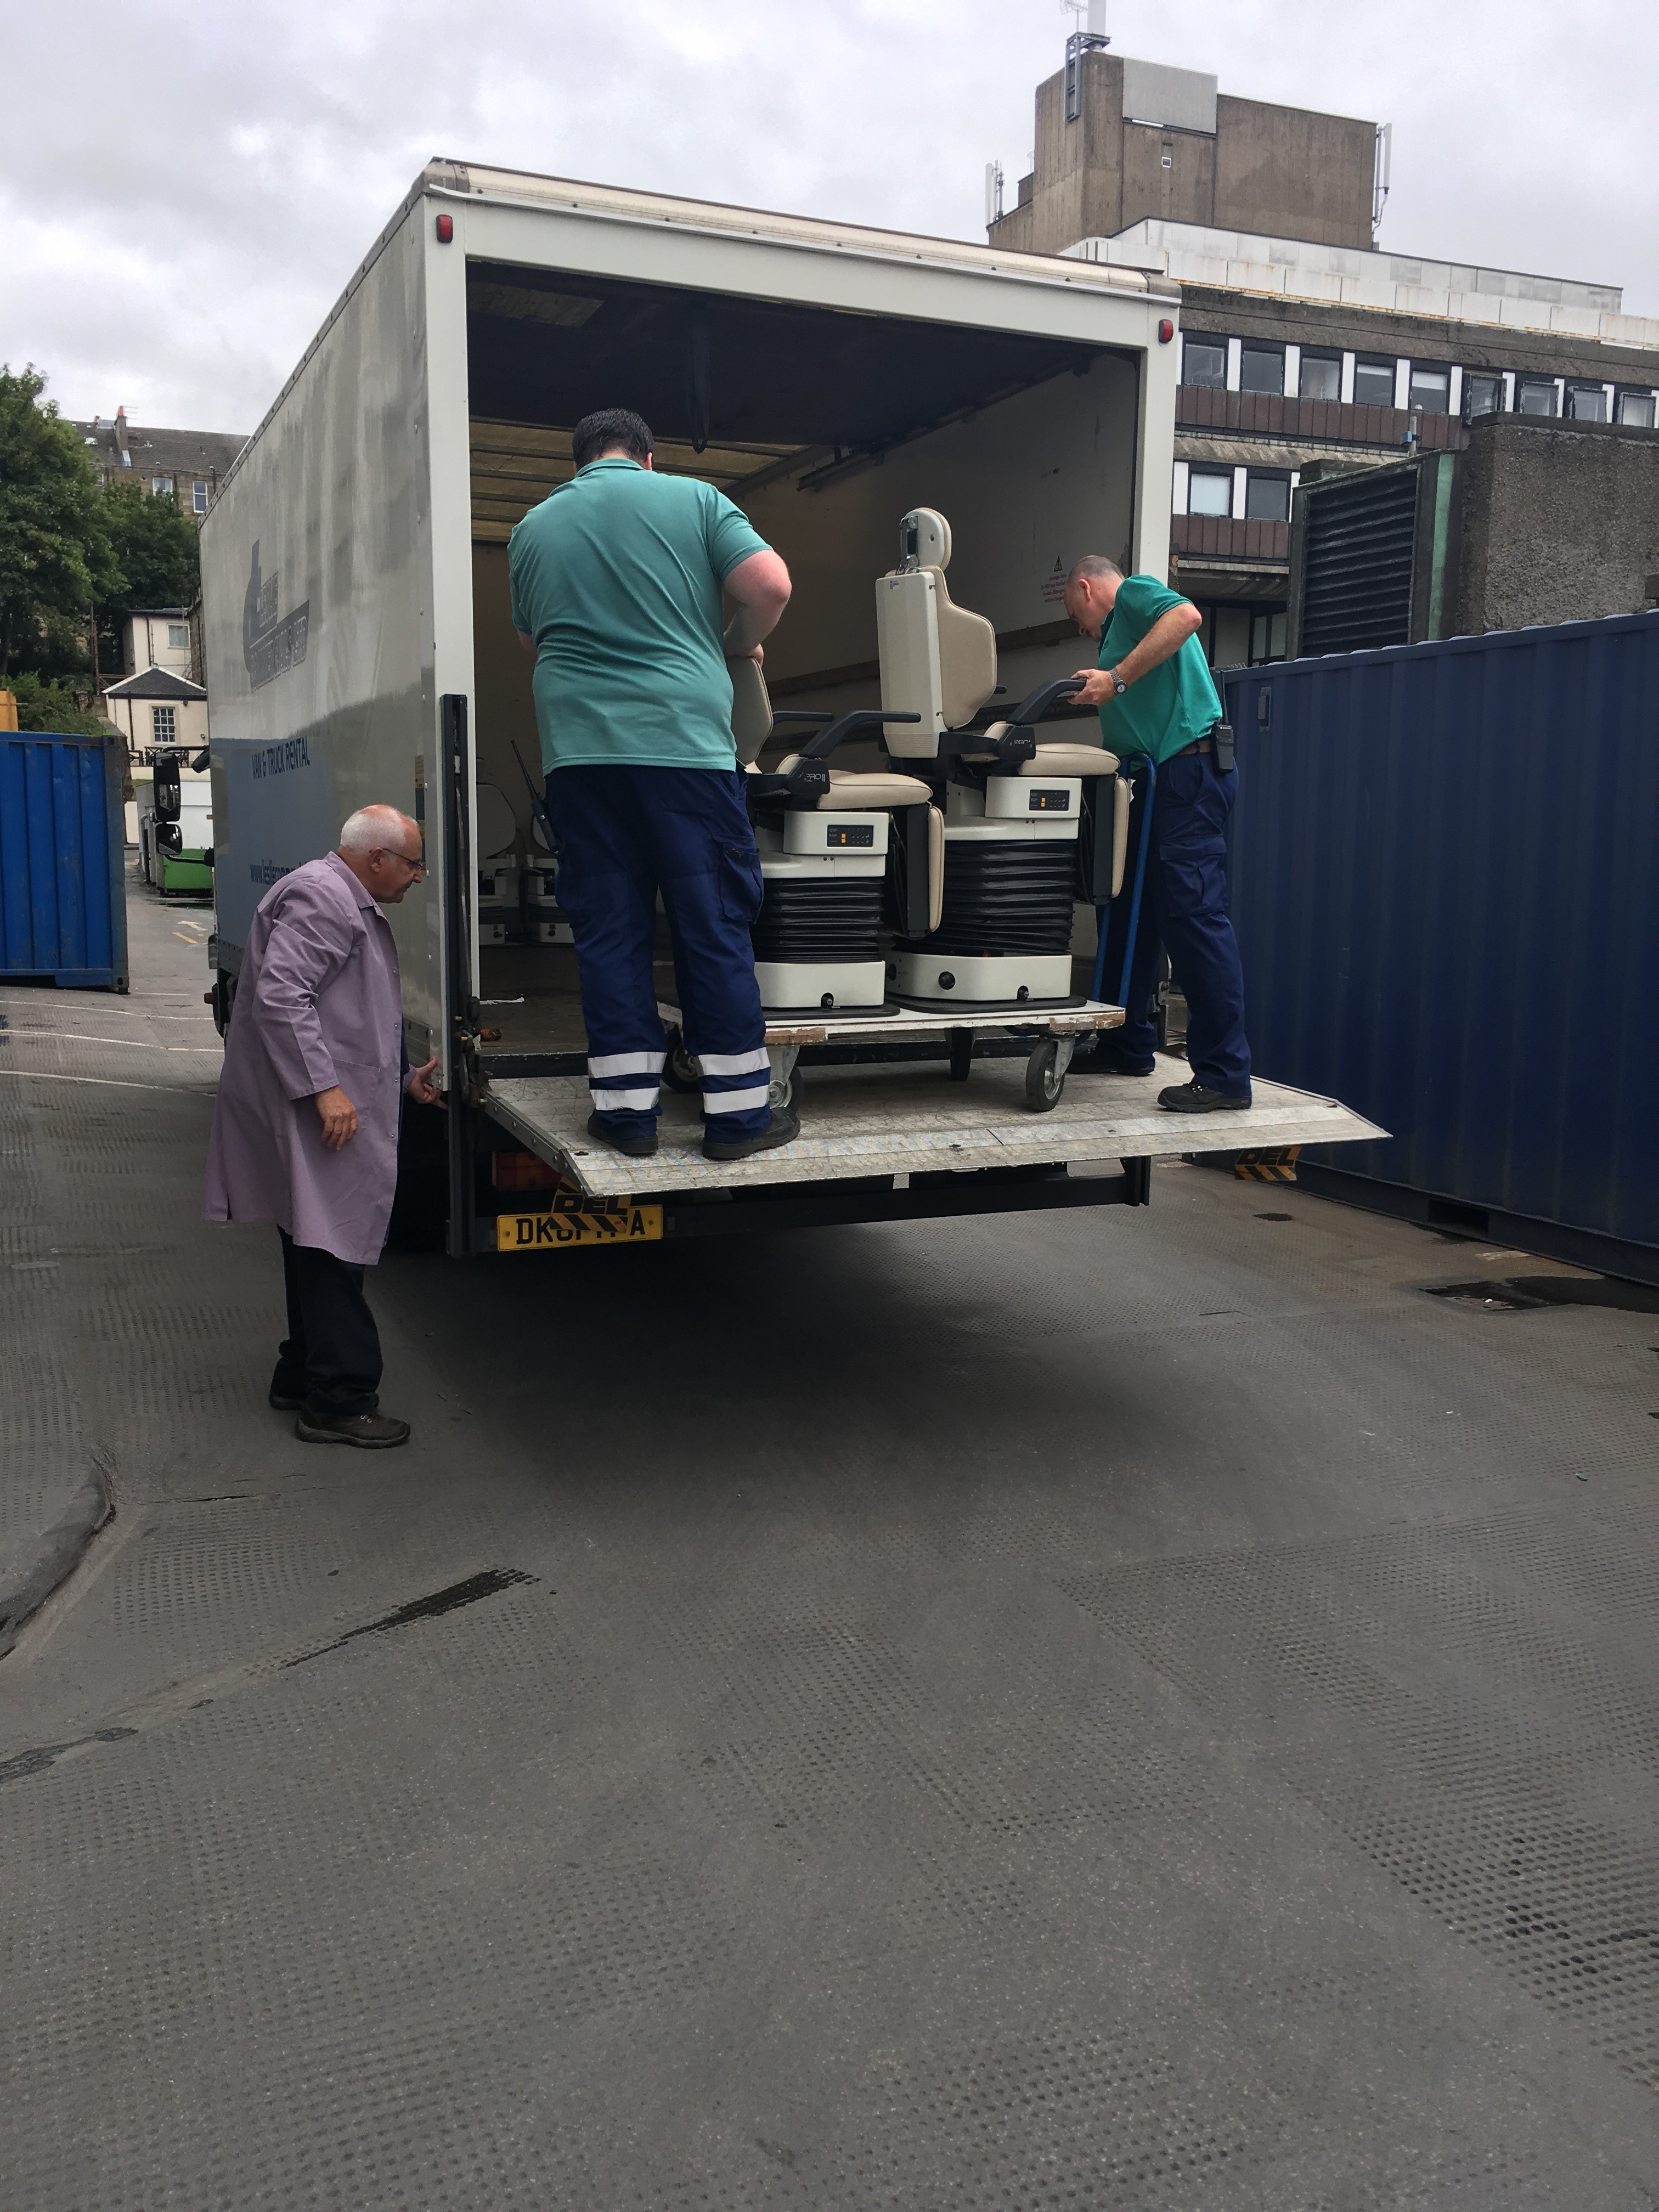 Glasgow Dental Hospital donates 12 chairs to Malawi's first dental school